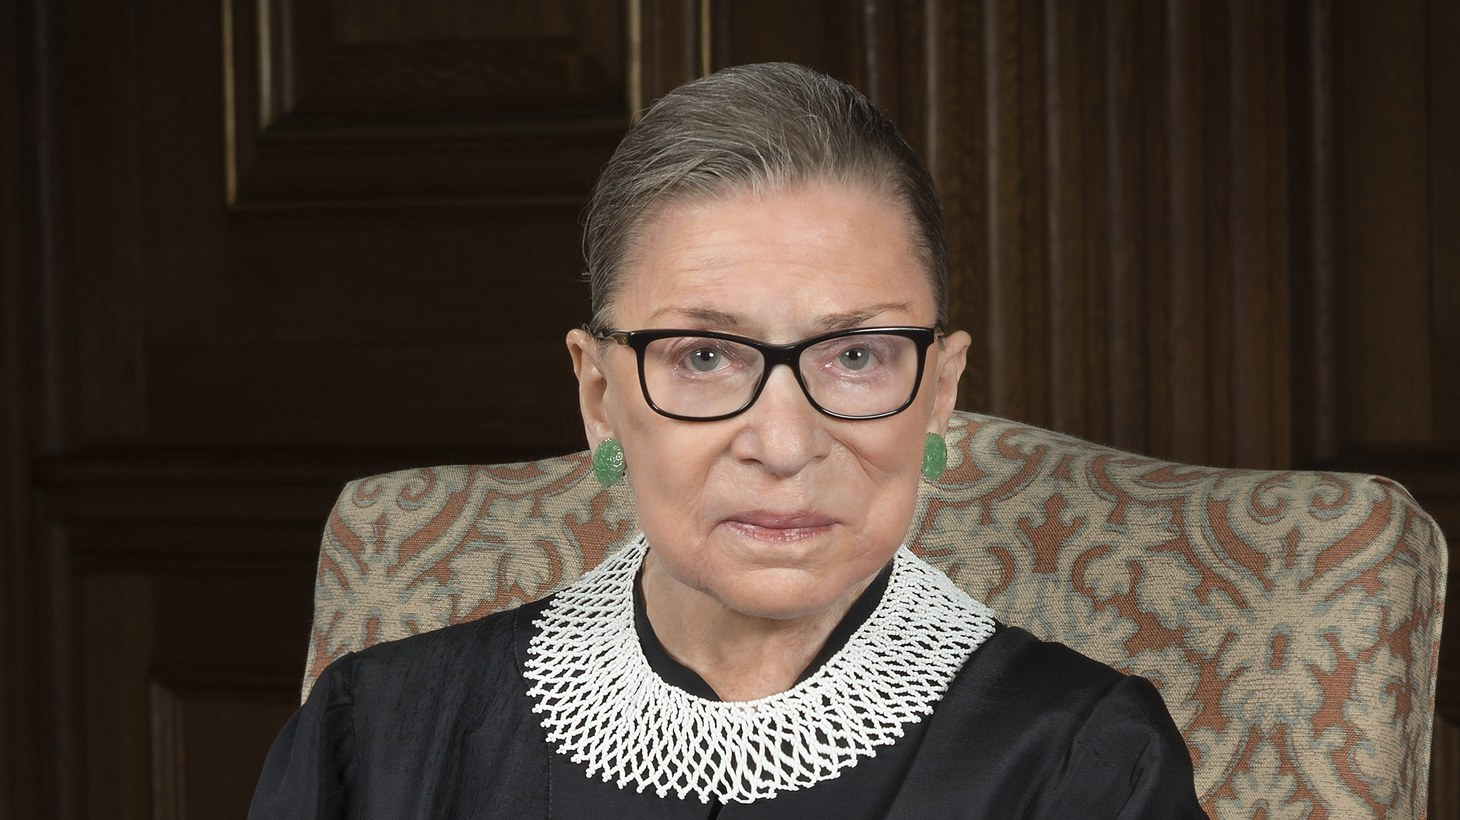 """Ruth Bader Ginsburg was the moral center of the Supreme Court, according to Adam Cohen, author of """"Supreme Inequality."""""""